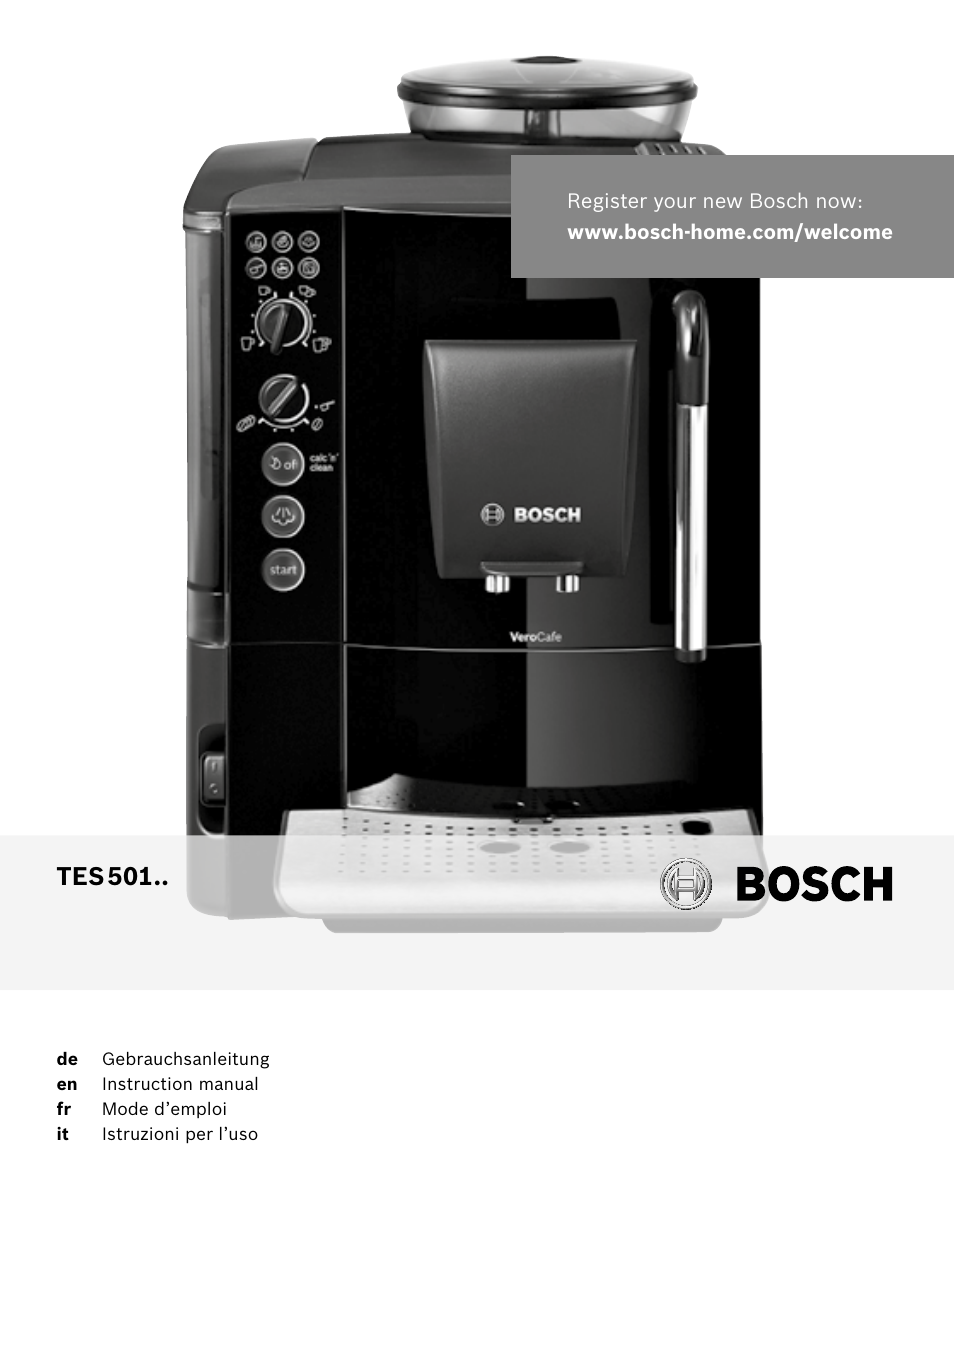 bosch tes50159de verocafe kaffeevollautomat schwarz user. Black Bedroom Furniture Sets. Home Design Ideas